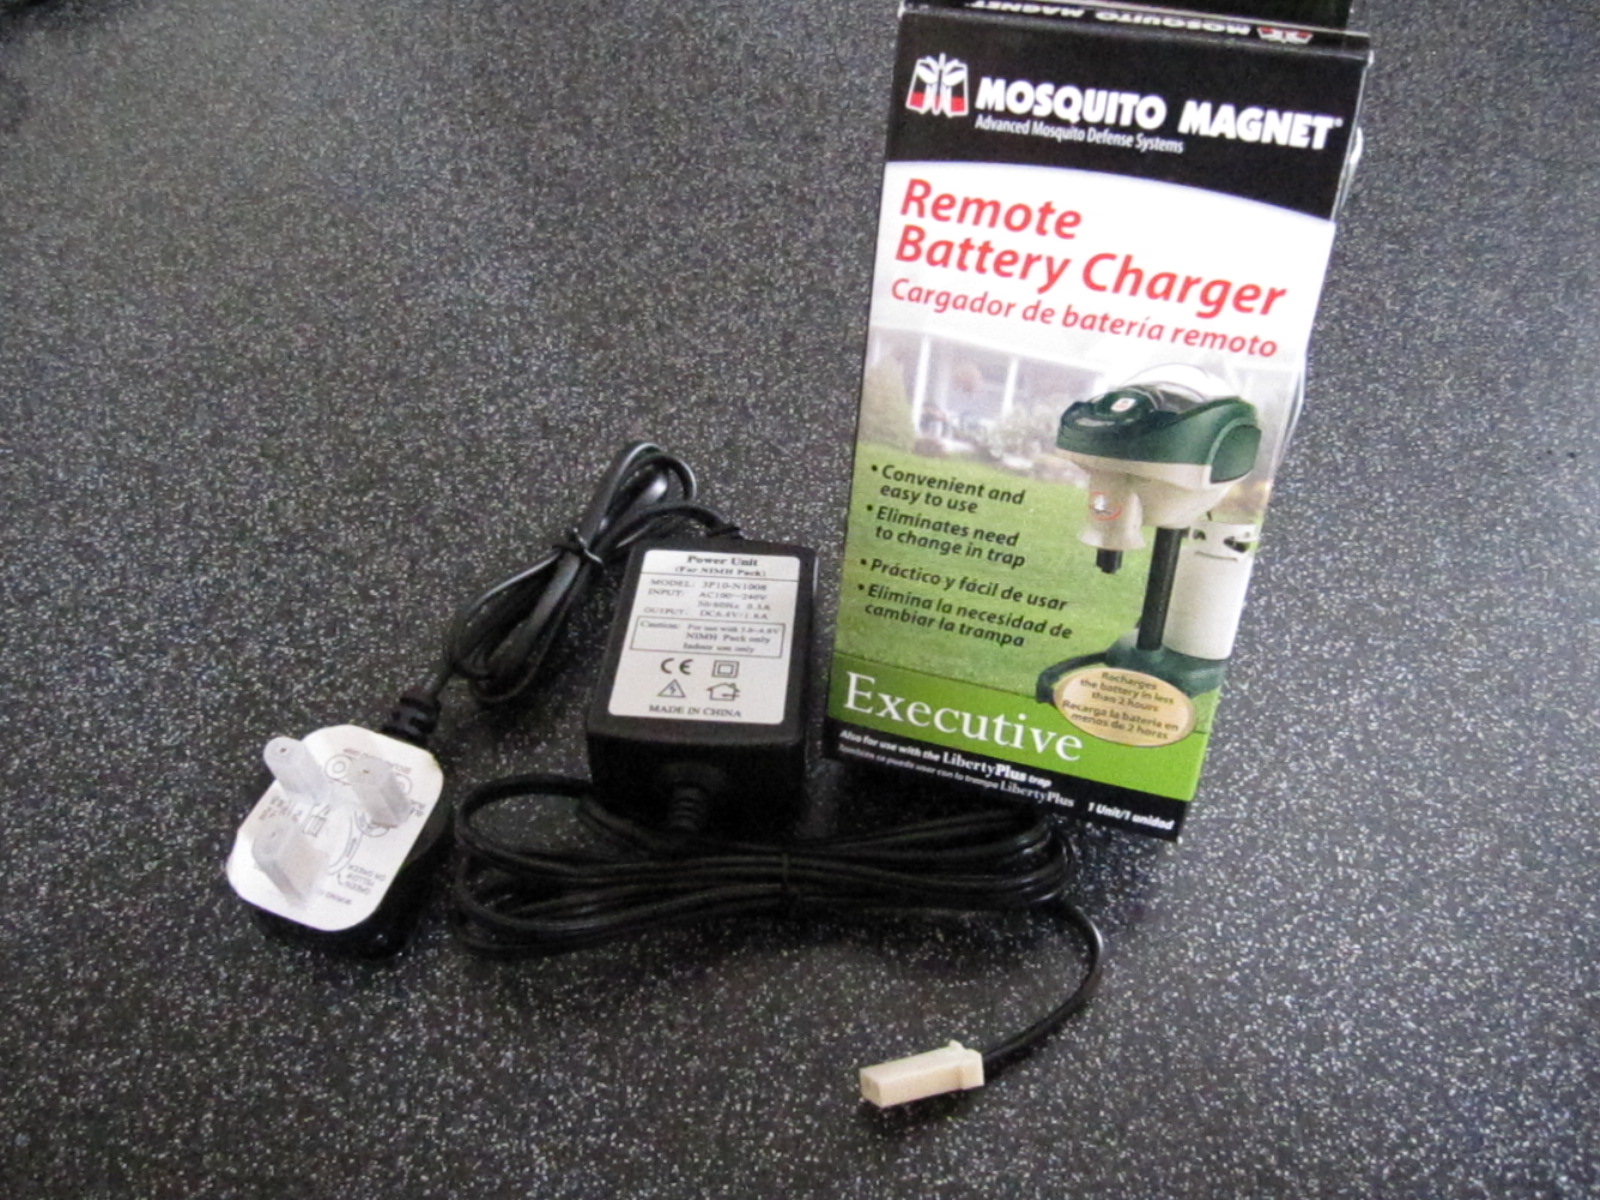 Remote Battery Charger